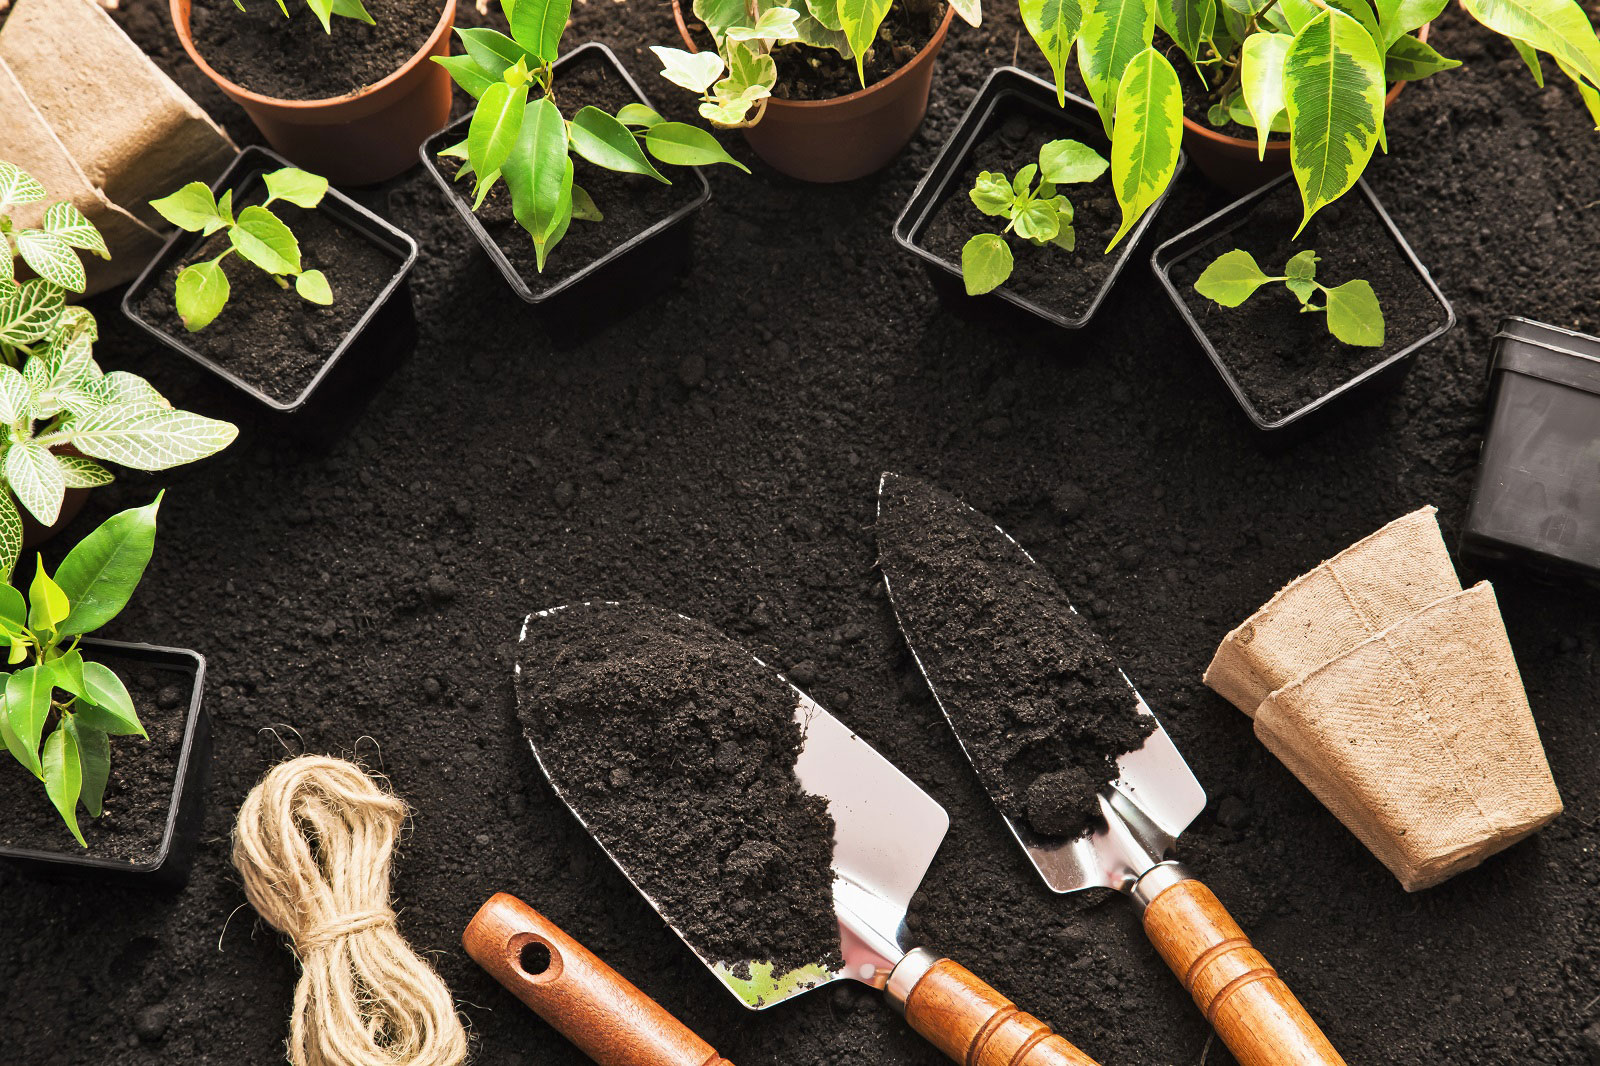 Plants-and-tools-in-soil